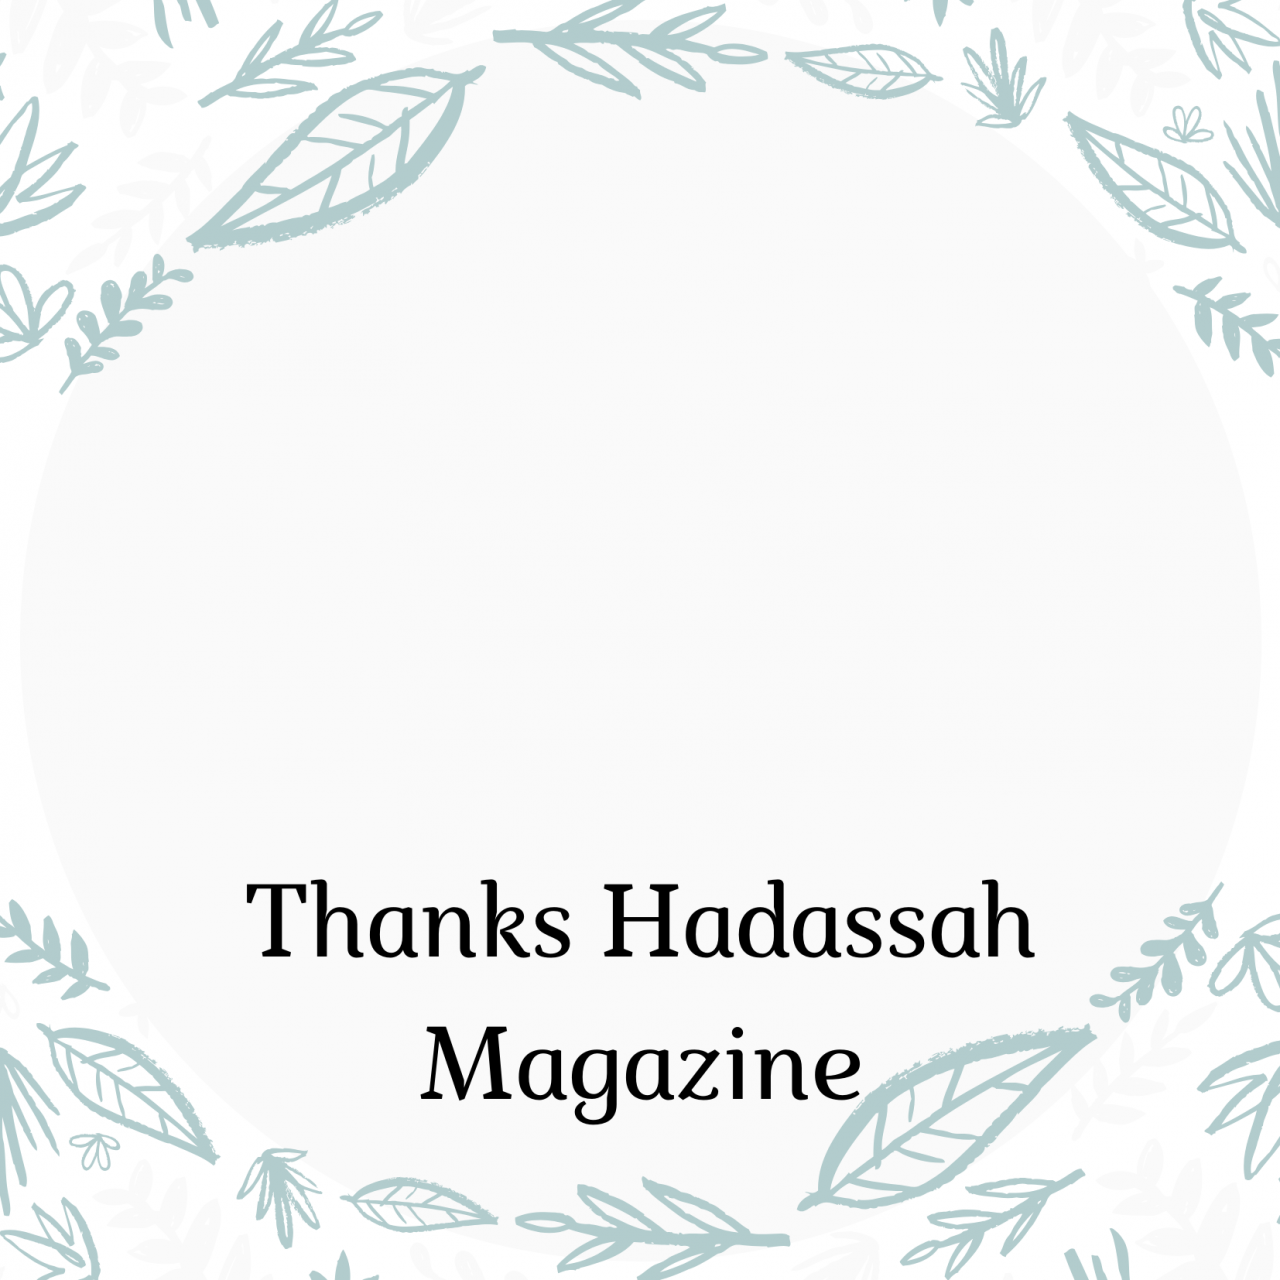 Thanks Hadassah Magazine